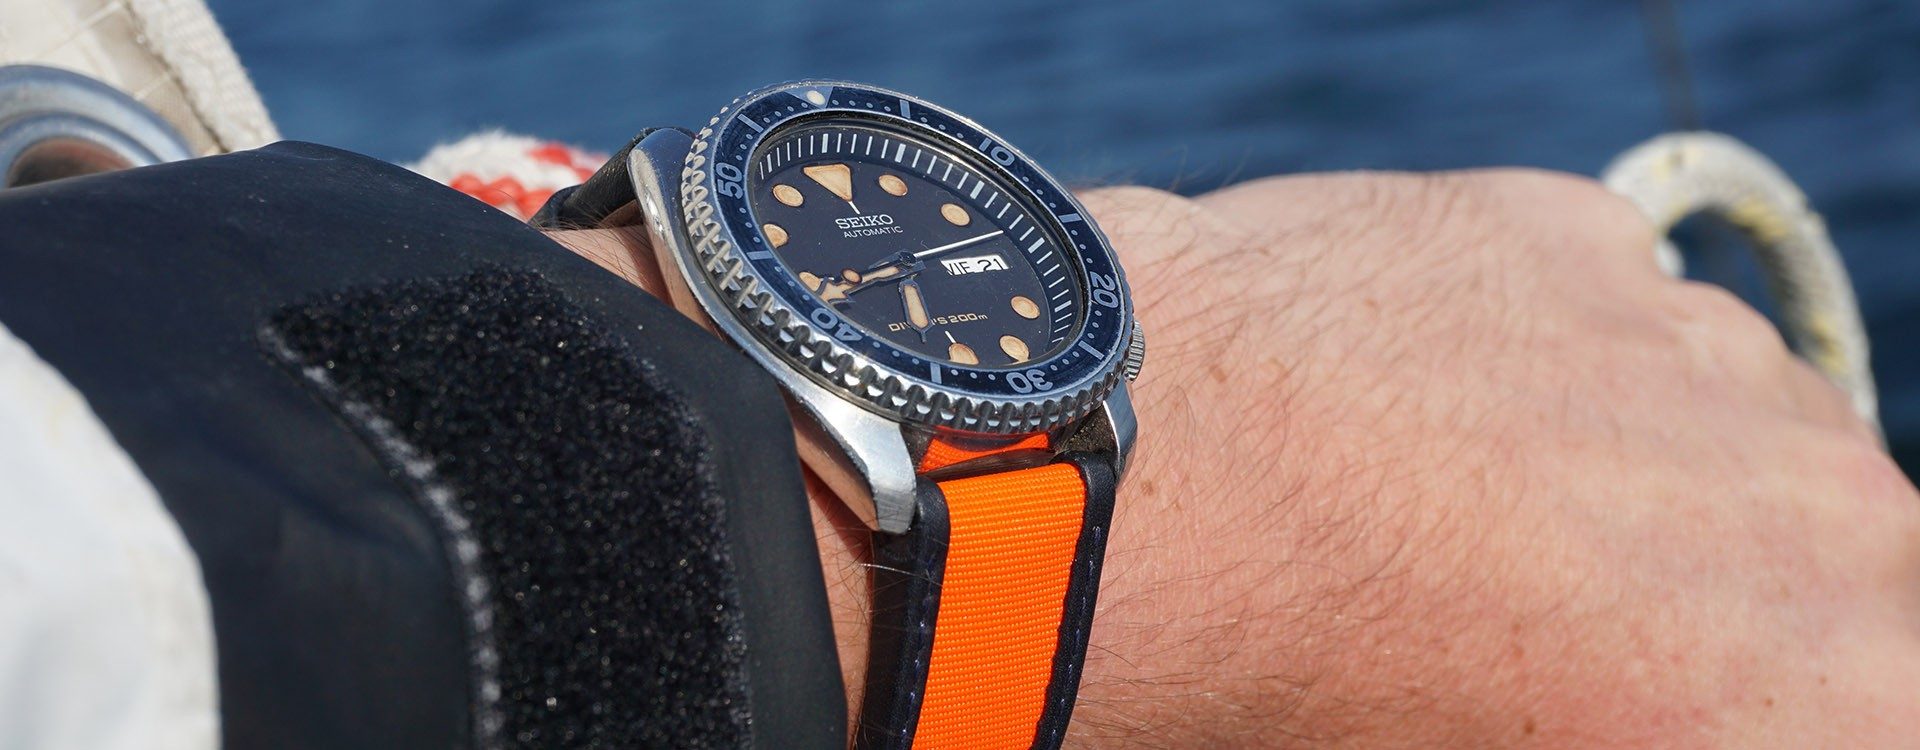 Sailcloth watch strap: the technicality of sailing, the comfort of leather